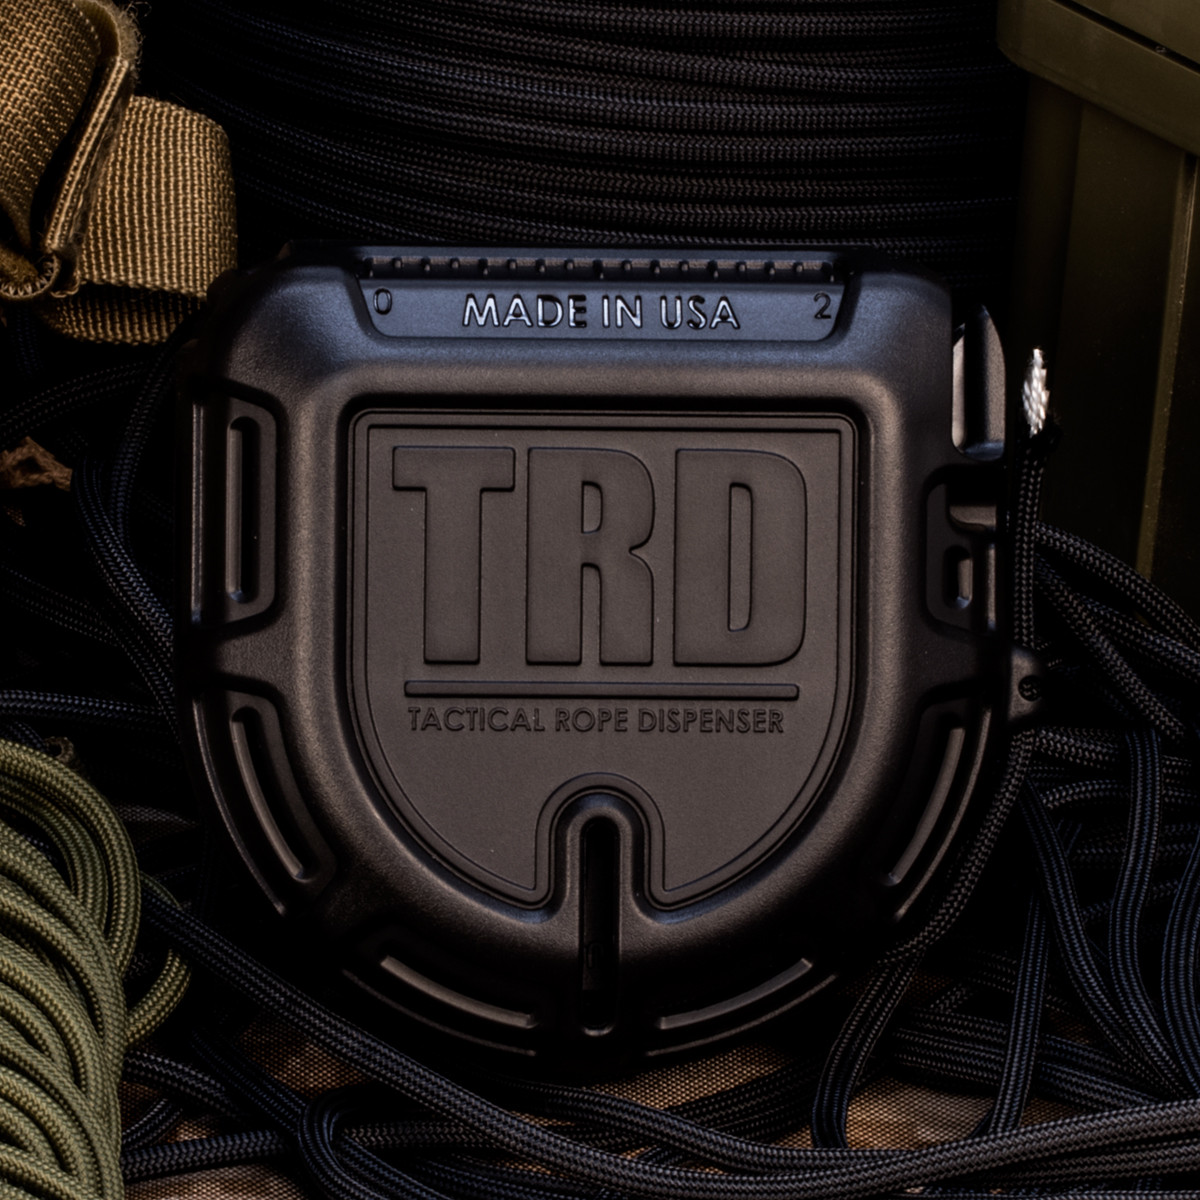 Atood Rope TRD Tactical Rope Dispenser - Black